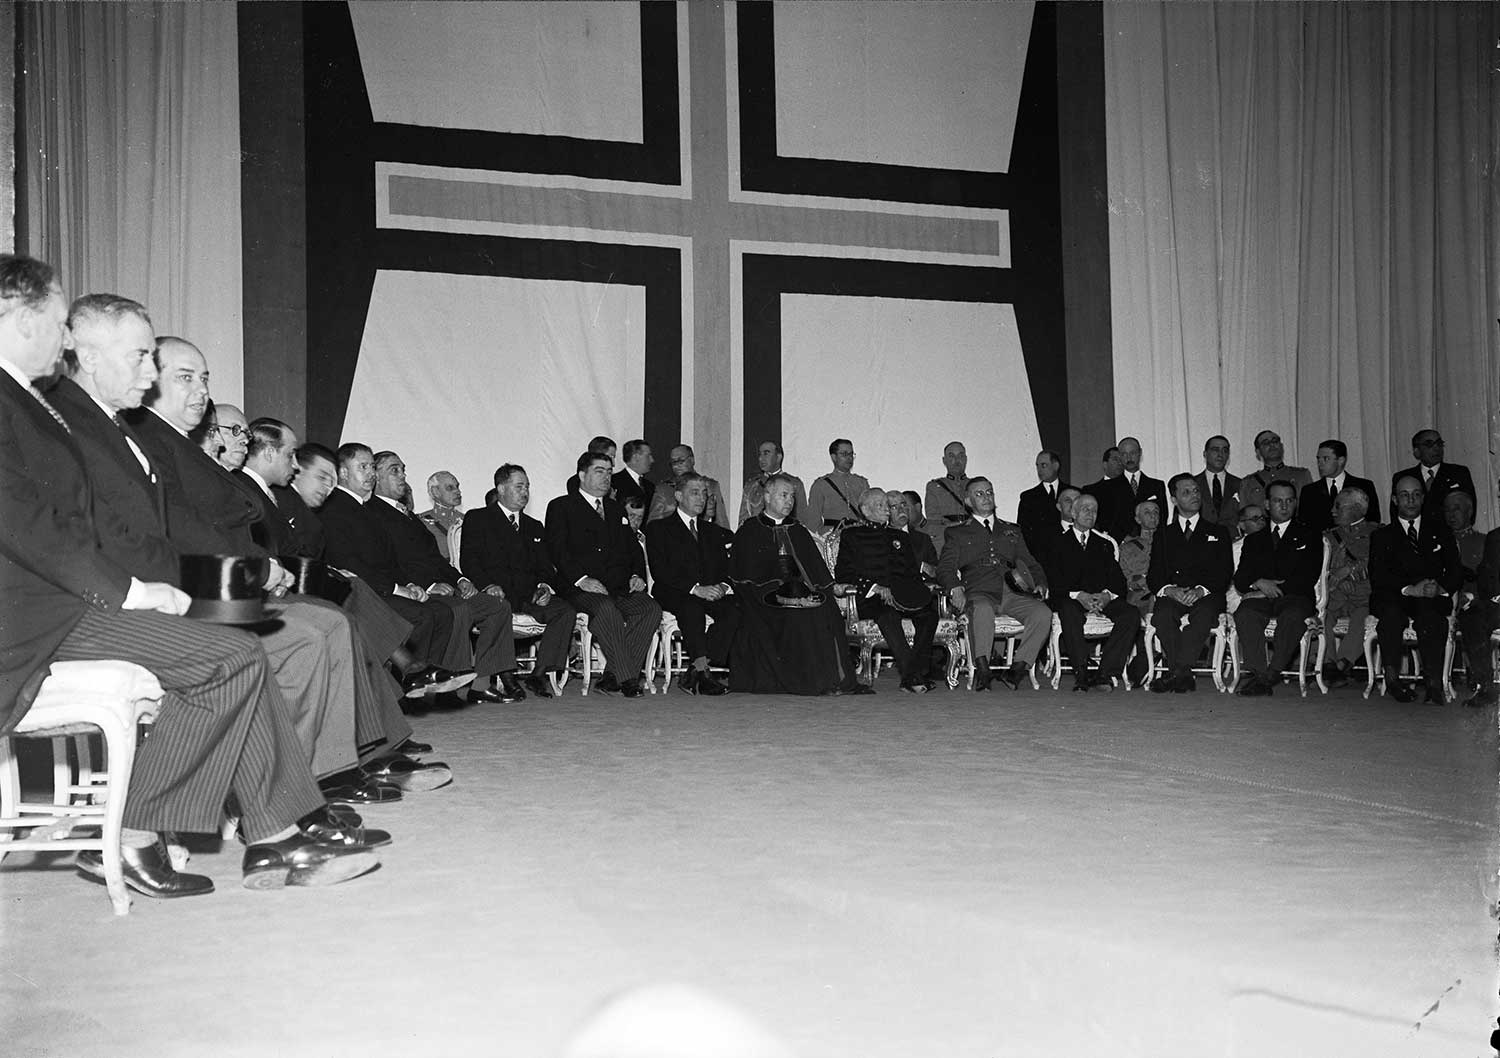 1940 EXPOSITION OF THE PORTUGUESE-SPEAKING WORLD  Photo: Studio Mário Novais, 1940, Lisbon  Biblioteca de Arte da Fundação Calouste Gulbenkian [CFT164_01169]